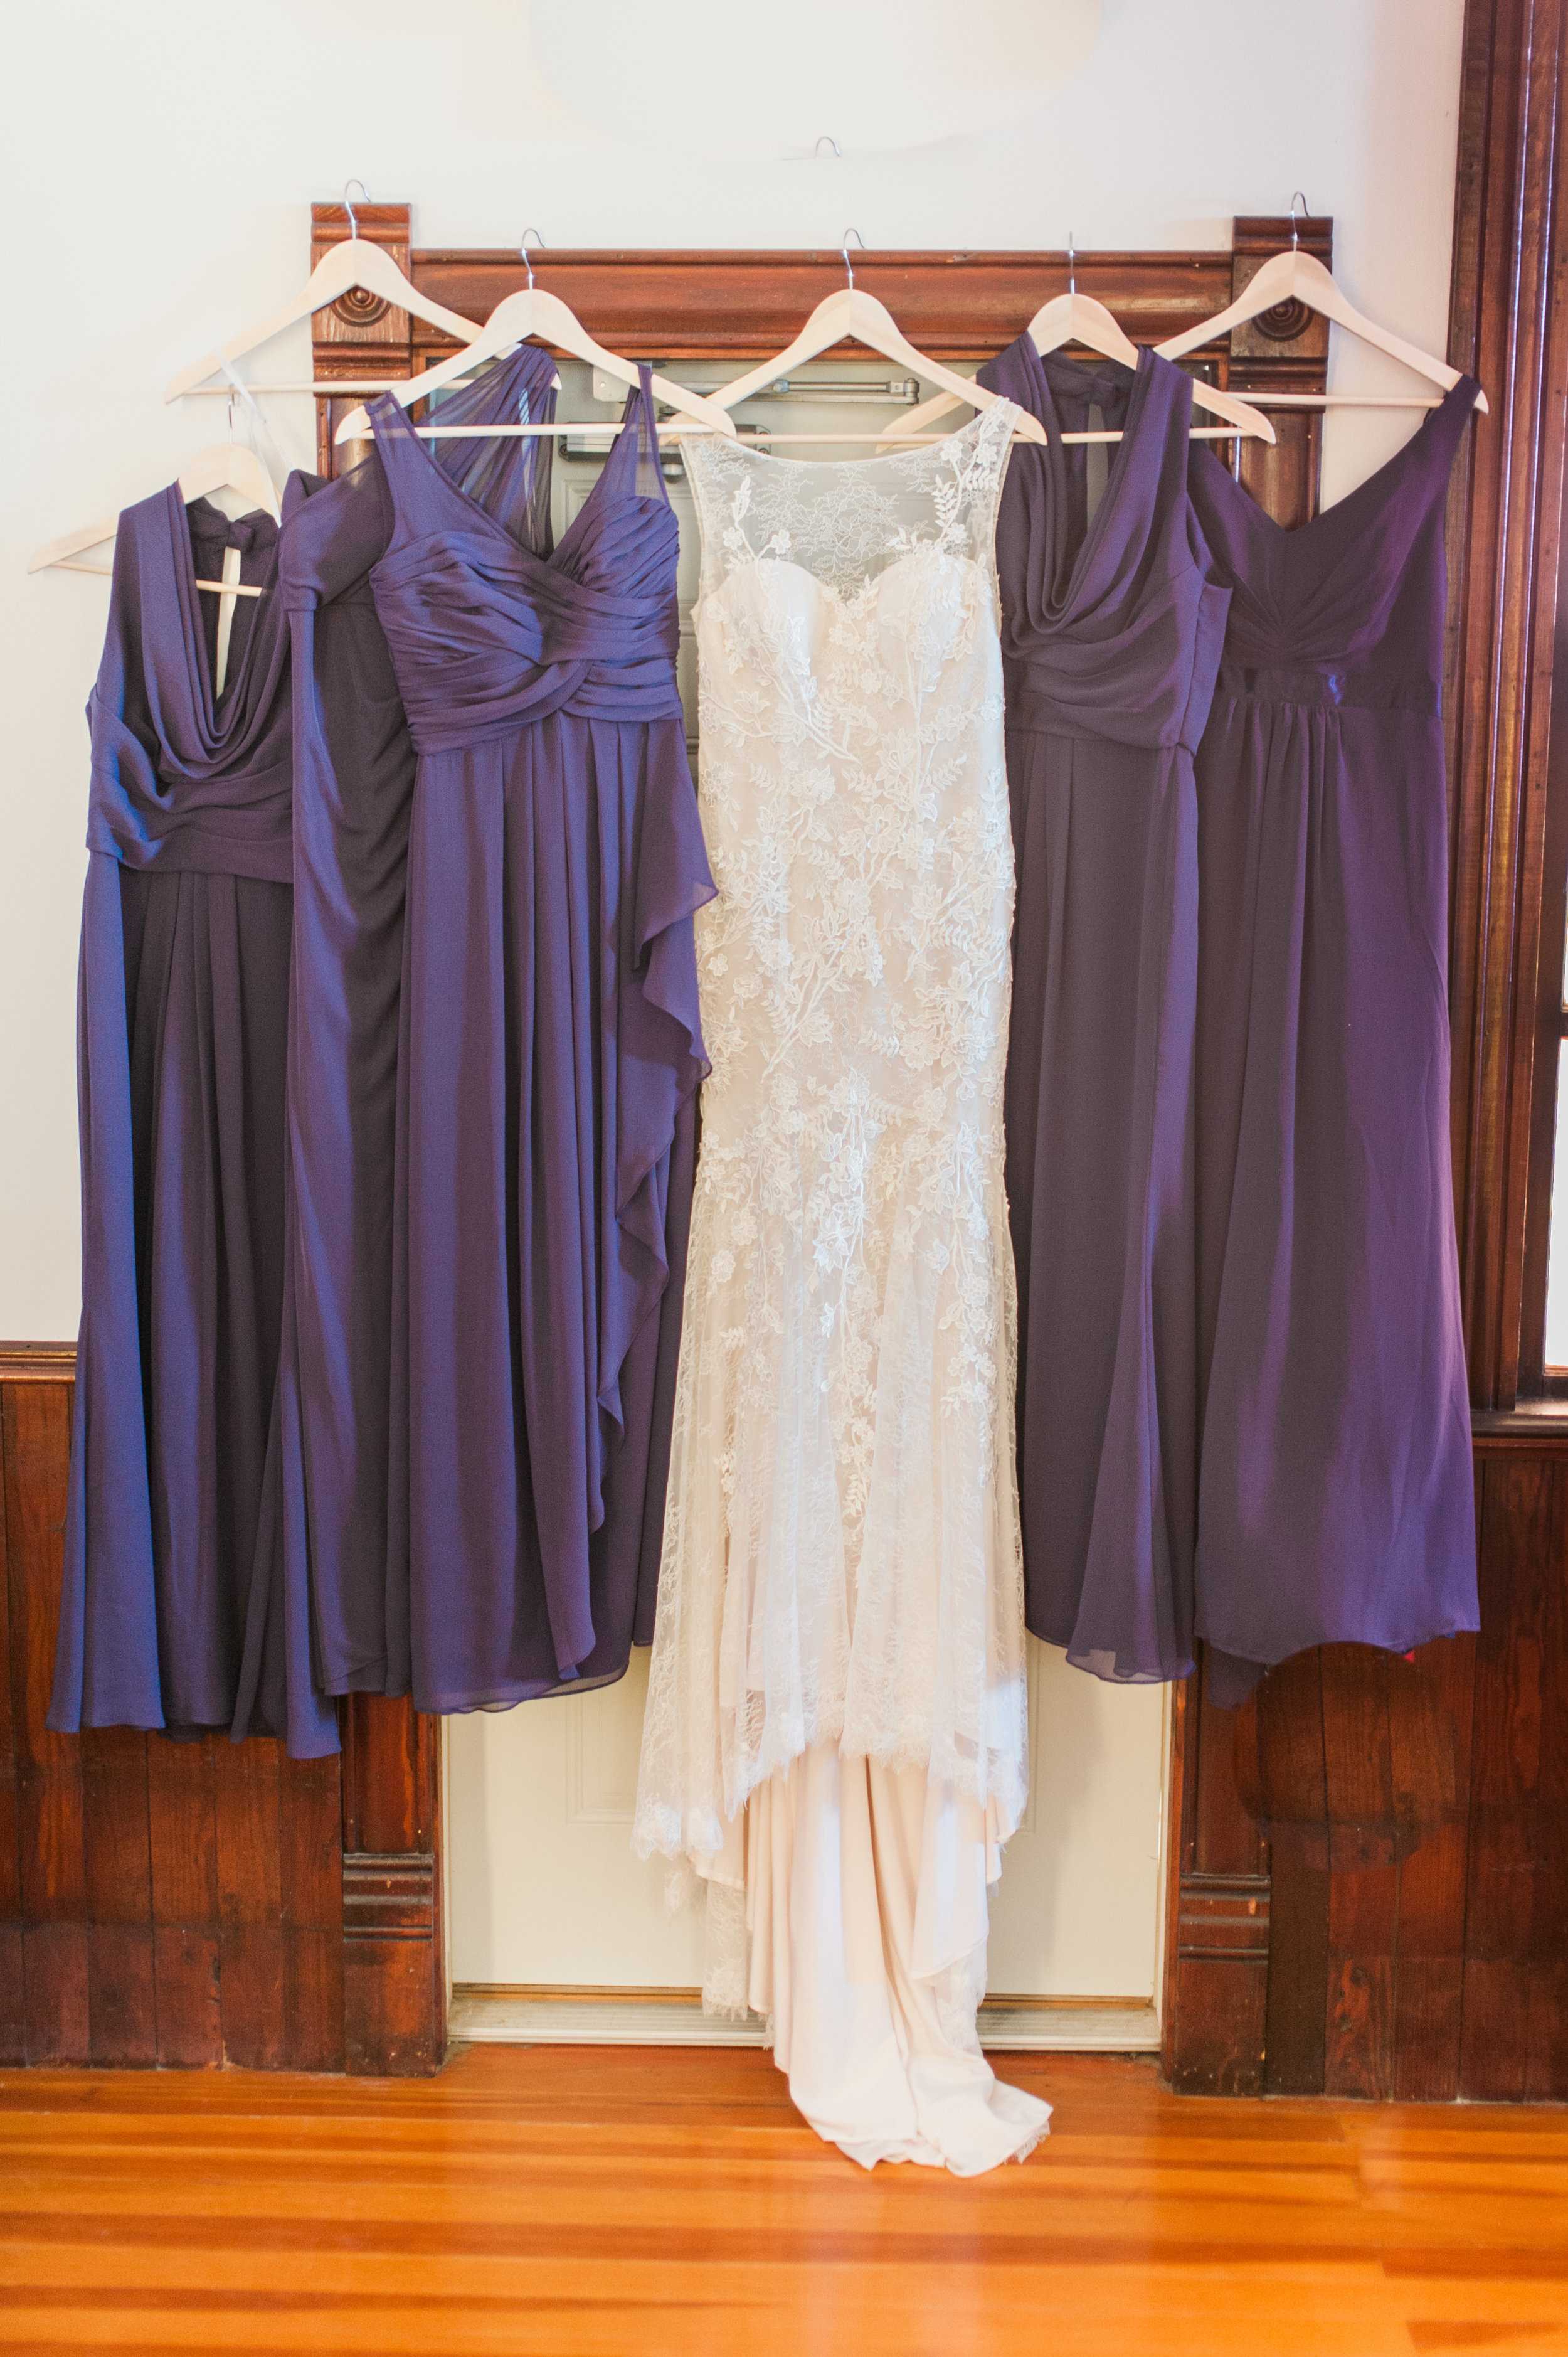 Bridesmaid dresses and bridal gown hanging for getting ready images in Elk City Chapel near Omaha Nebraska